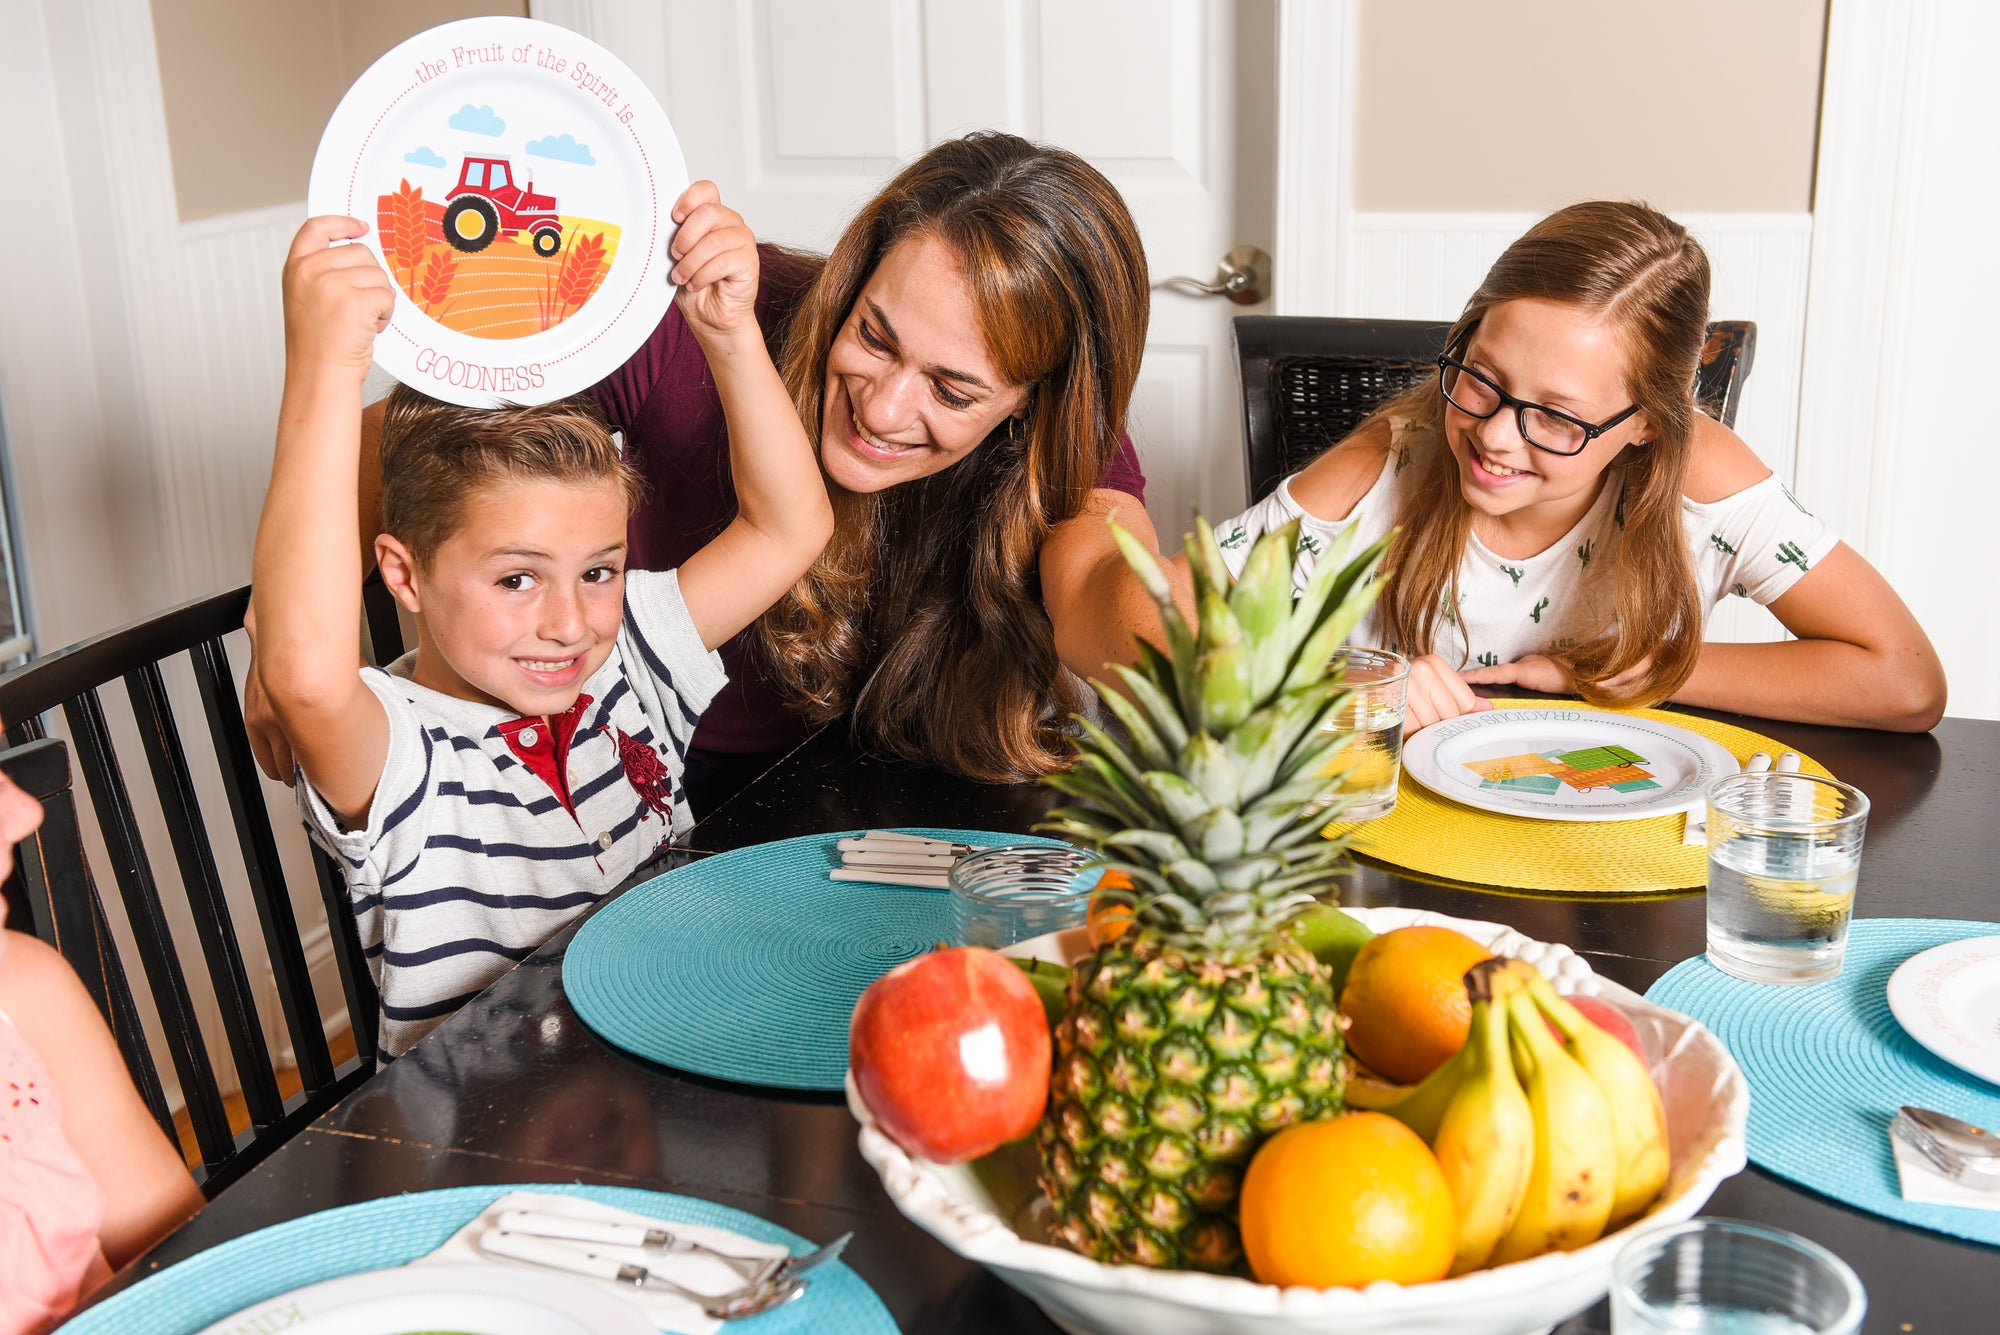 Make Mealtimes Meaningful and Fun!